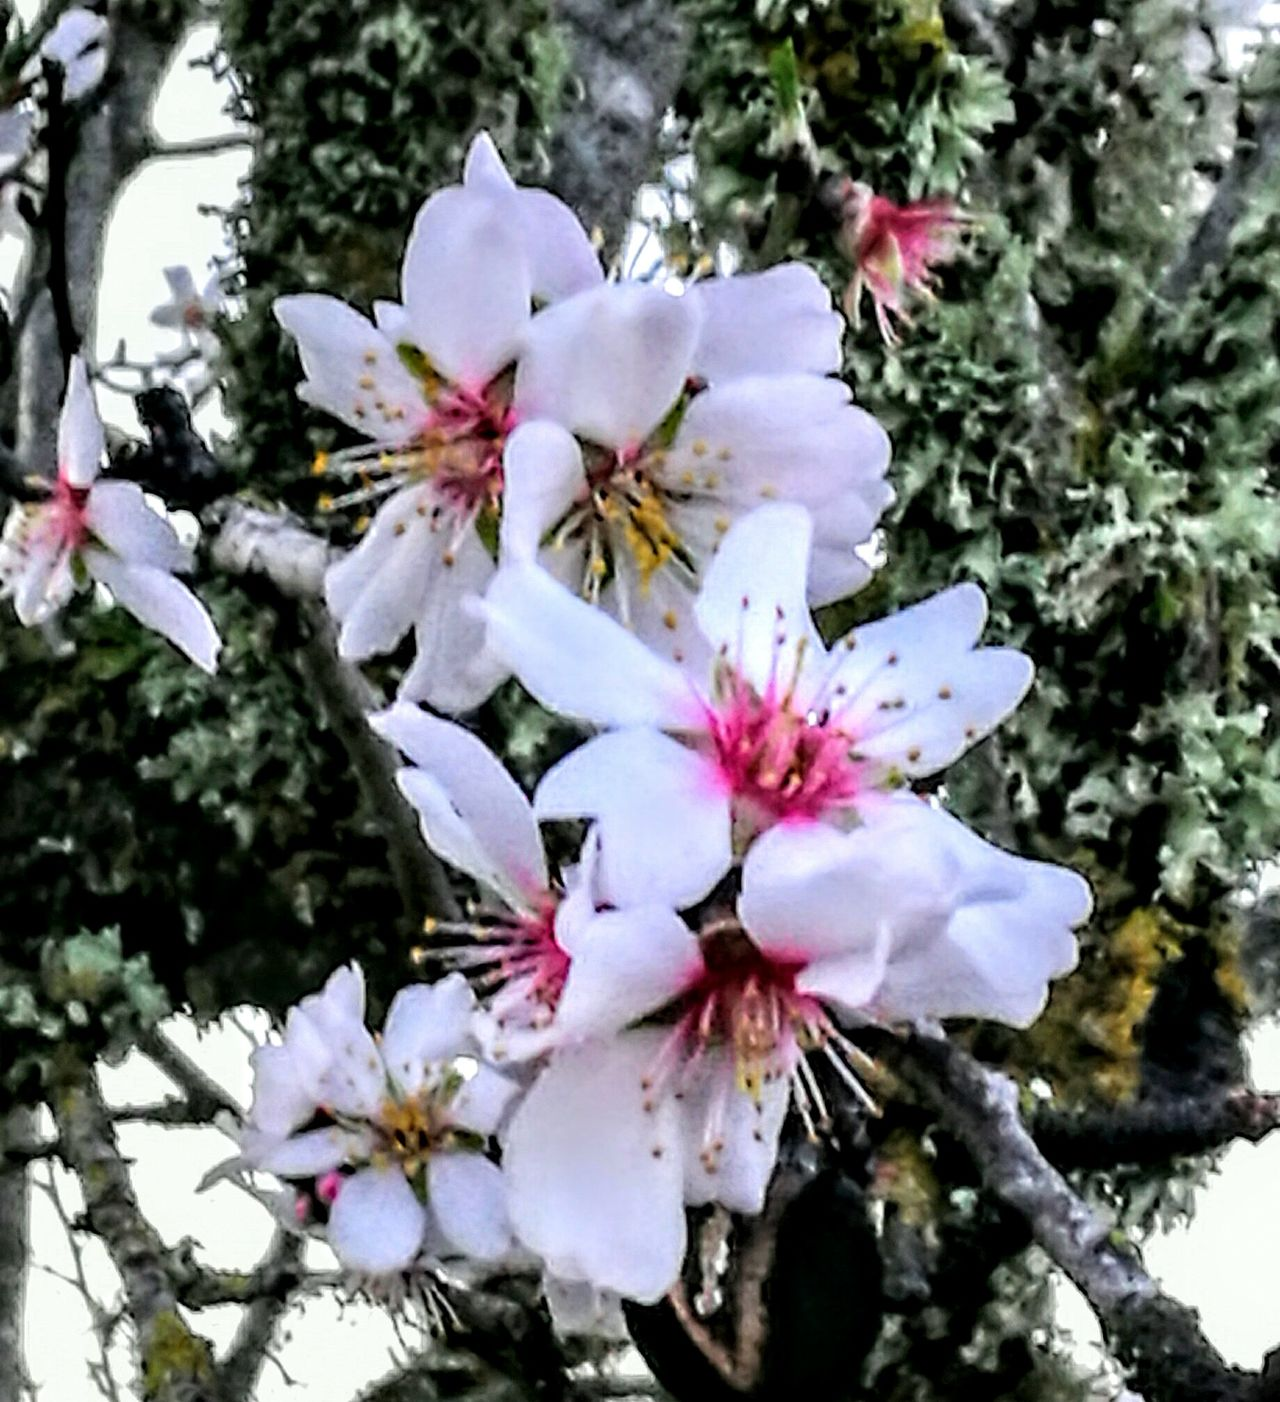 Wonderful Nature on Mallorca ..... Nature Growth Beauty In Nature Flower Flower Head Close-up Outdoors Petal No People Fragility Plant Day Tree Branch Freshness PalmaDiMaiorca GetbetterwithAlex Originalpicture